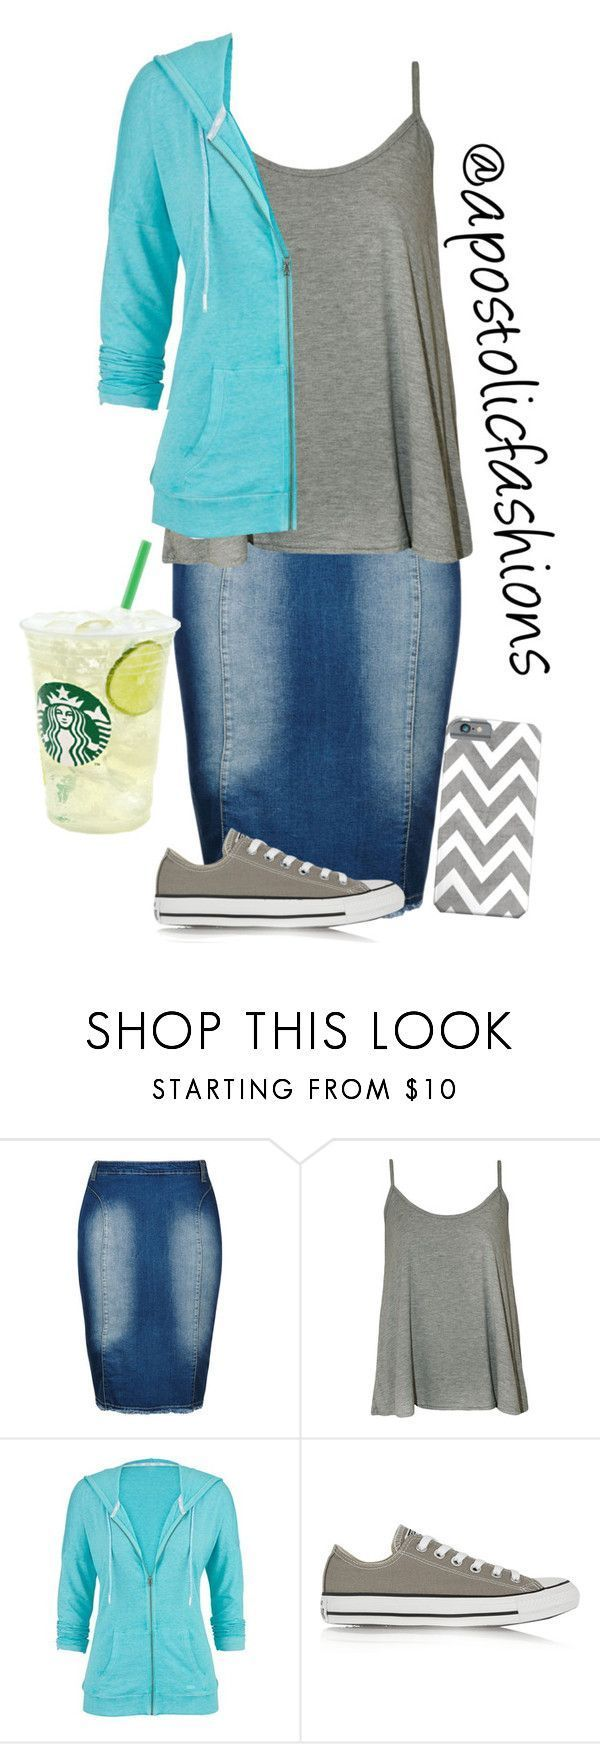 """Apostolic Fashions #1123"" by apostolicfashions on Polyvore featuring City Chic, WearAll, maurices, Converse and plus size clothing"